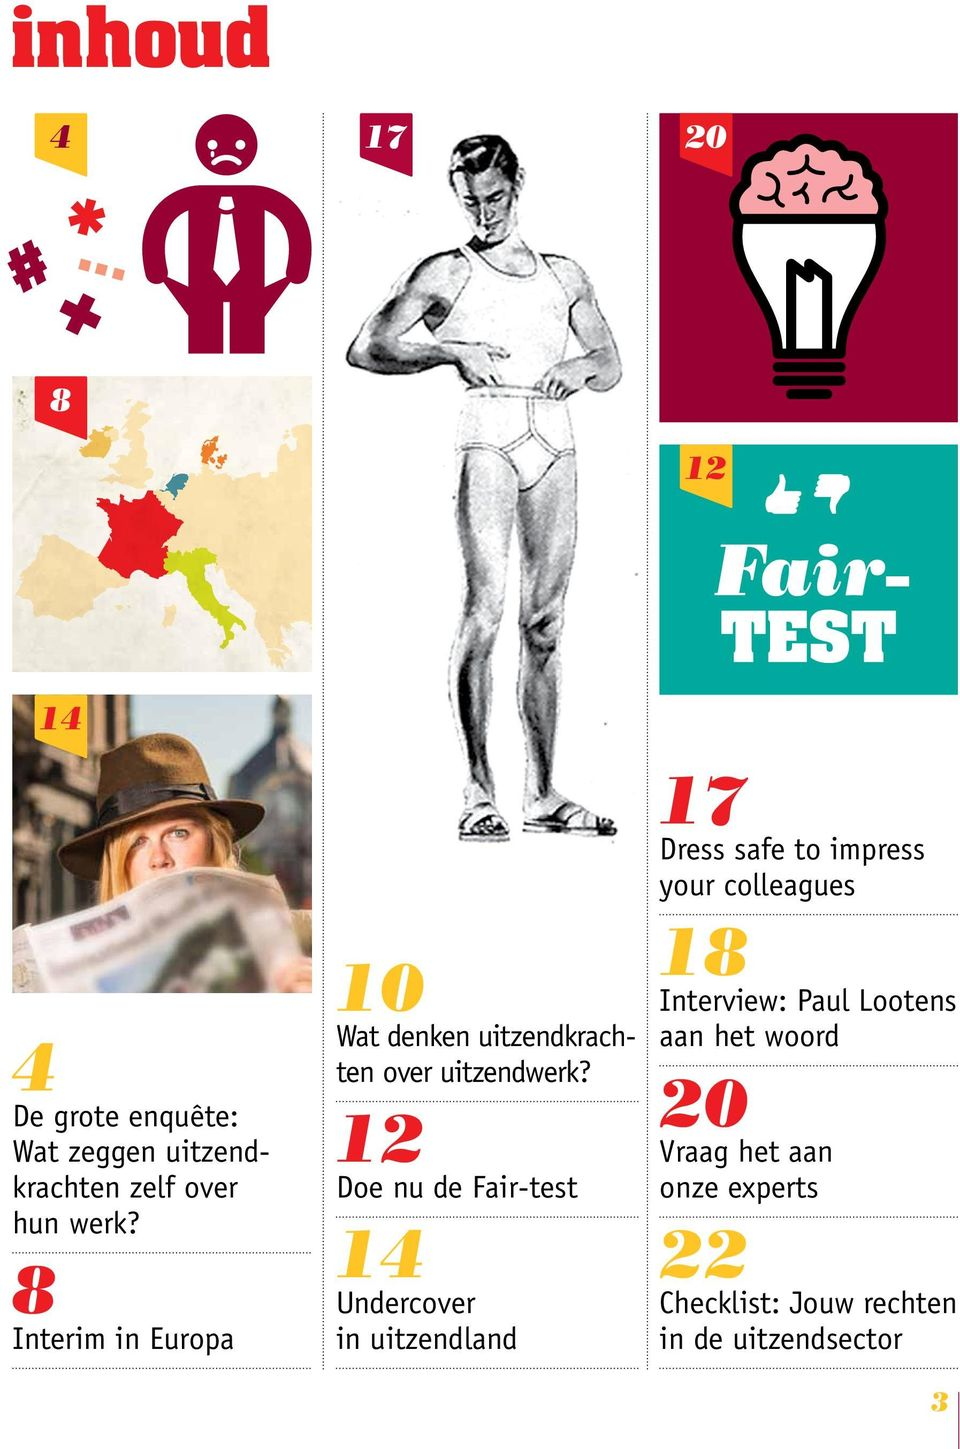 12 Doe nu de Fair-test 14 Undercover in uitzendland 17 Dress safe to impress your colleagues